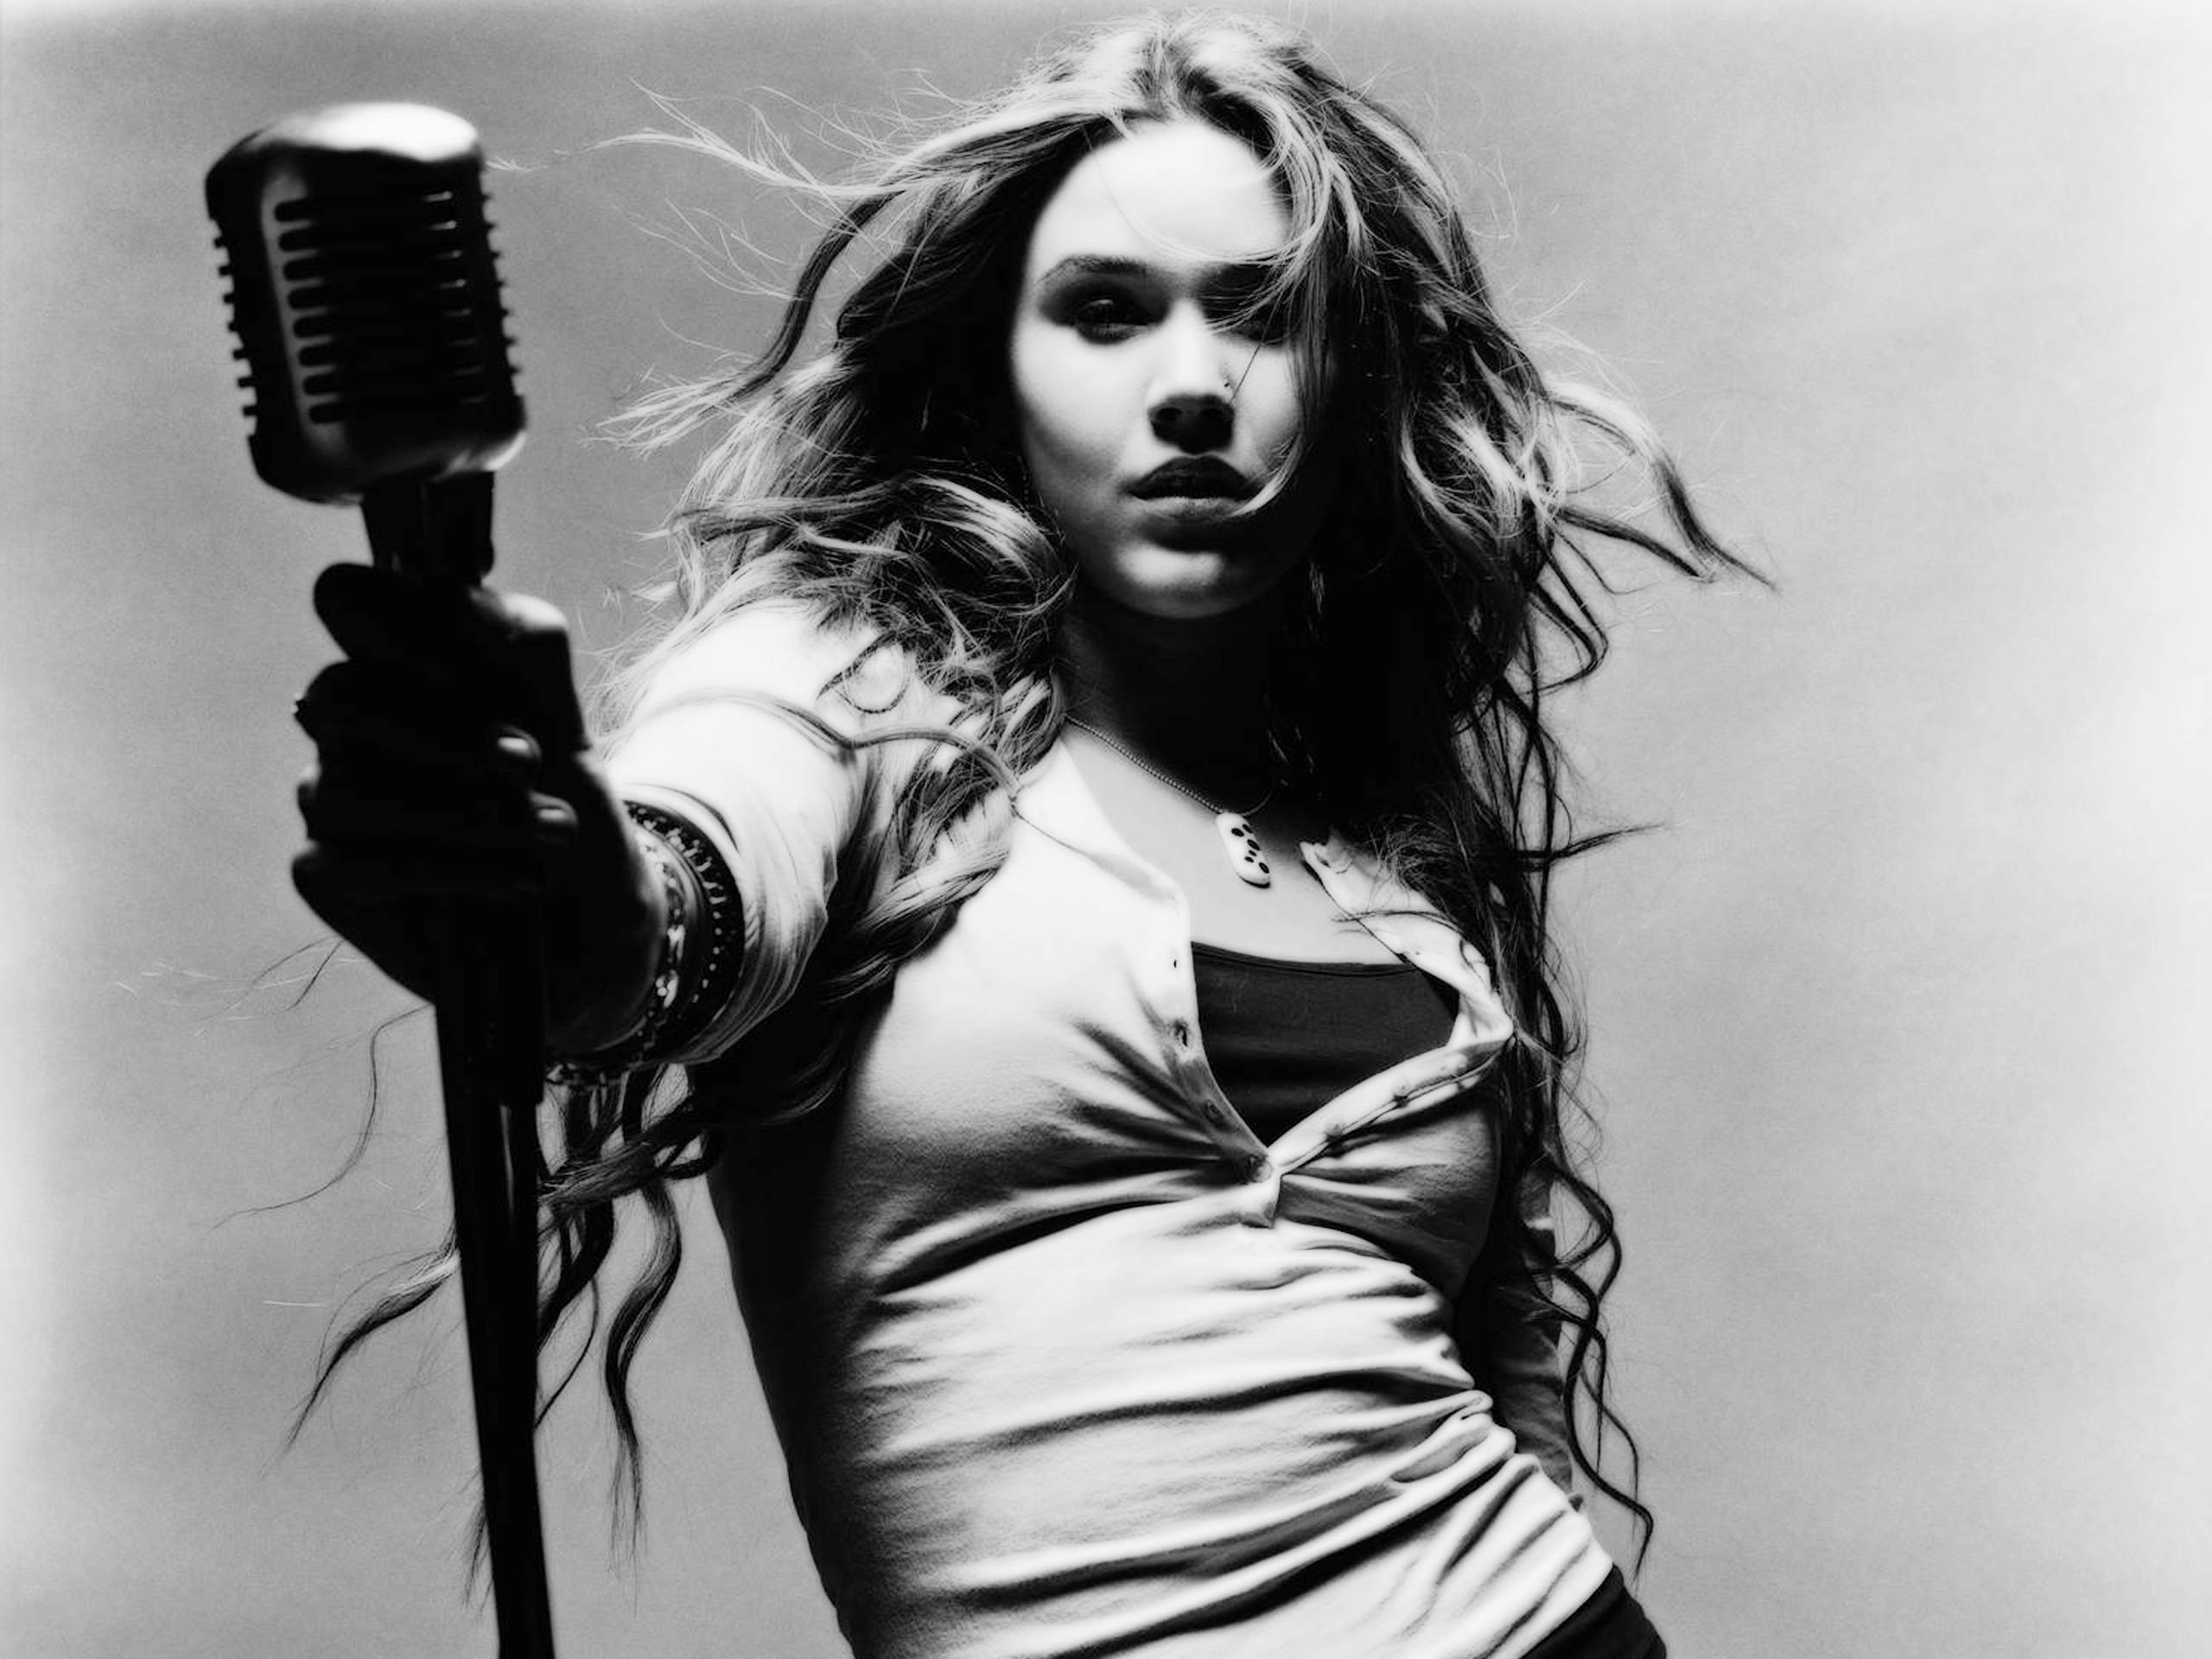 monochrome joss stone wallpaper 61076